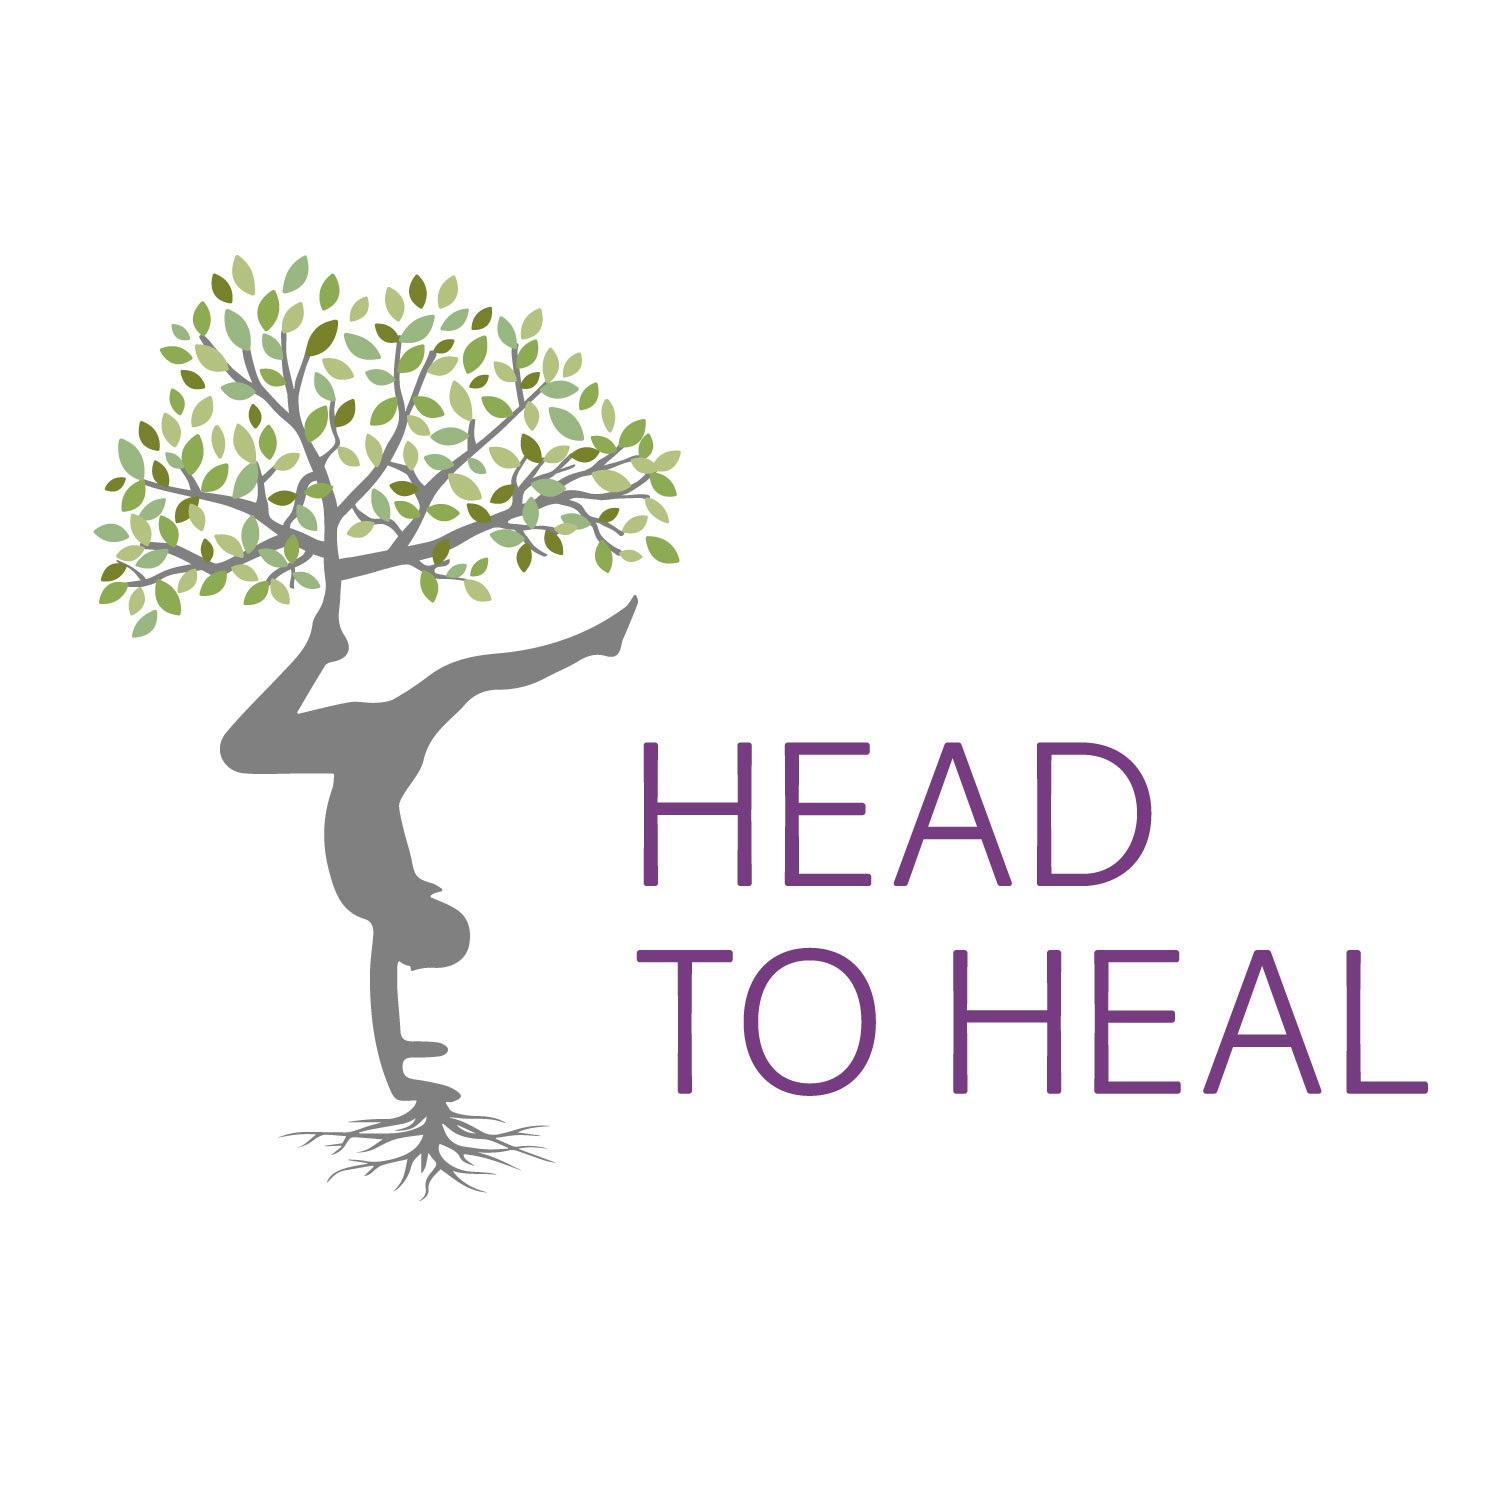 Head to Heal logo design featuring tree of life and yoga